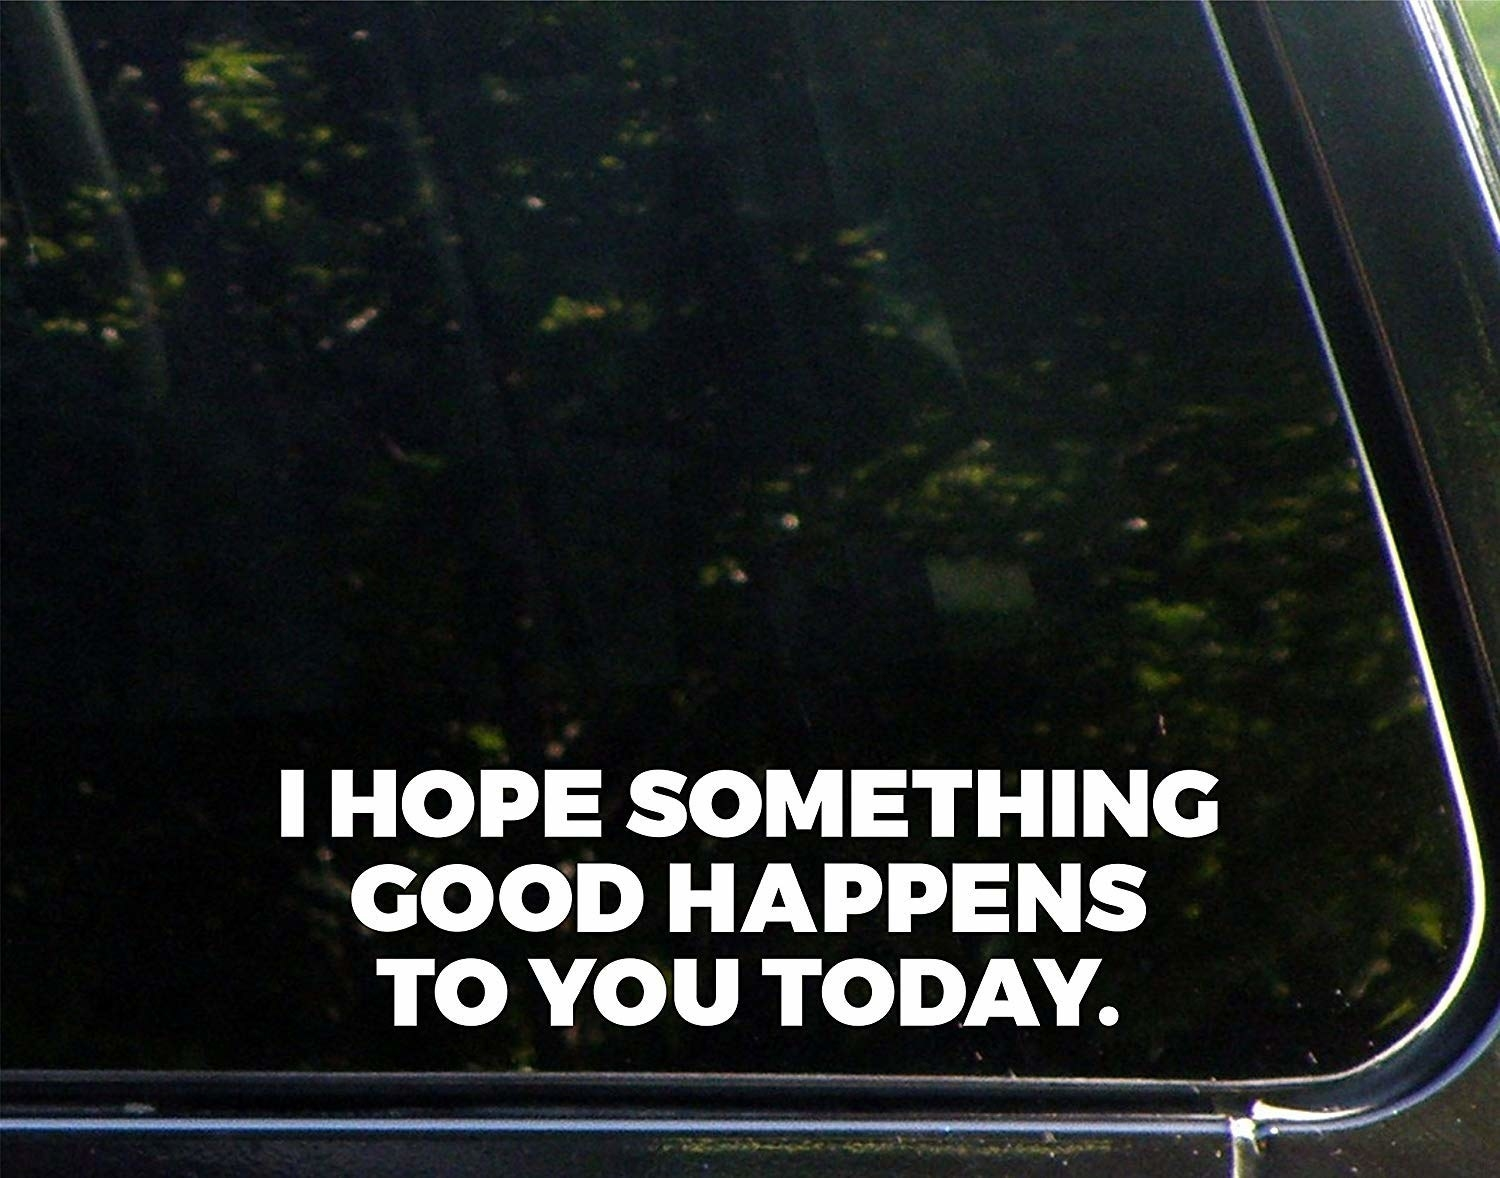 decal that says i hope something good happens to you today